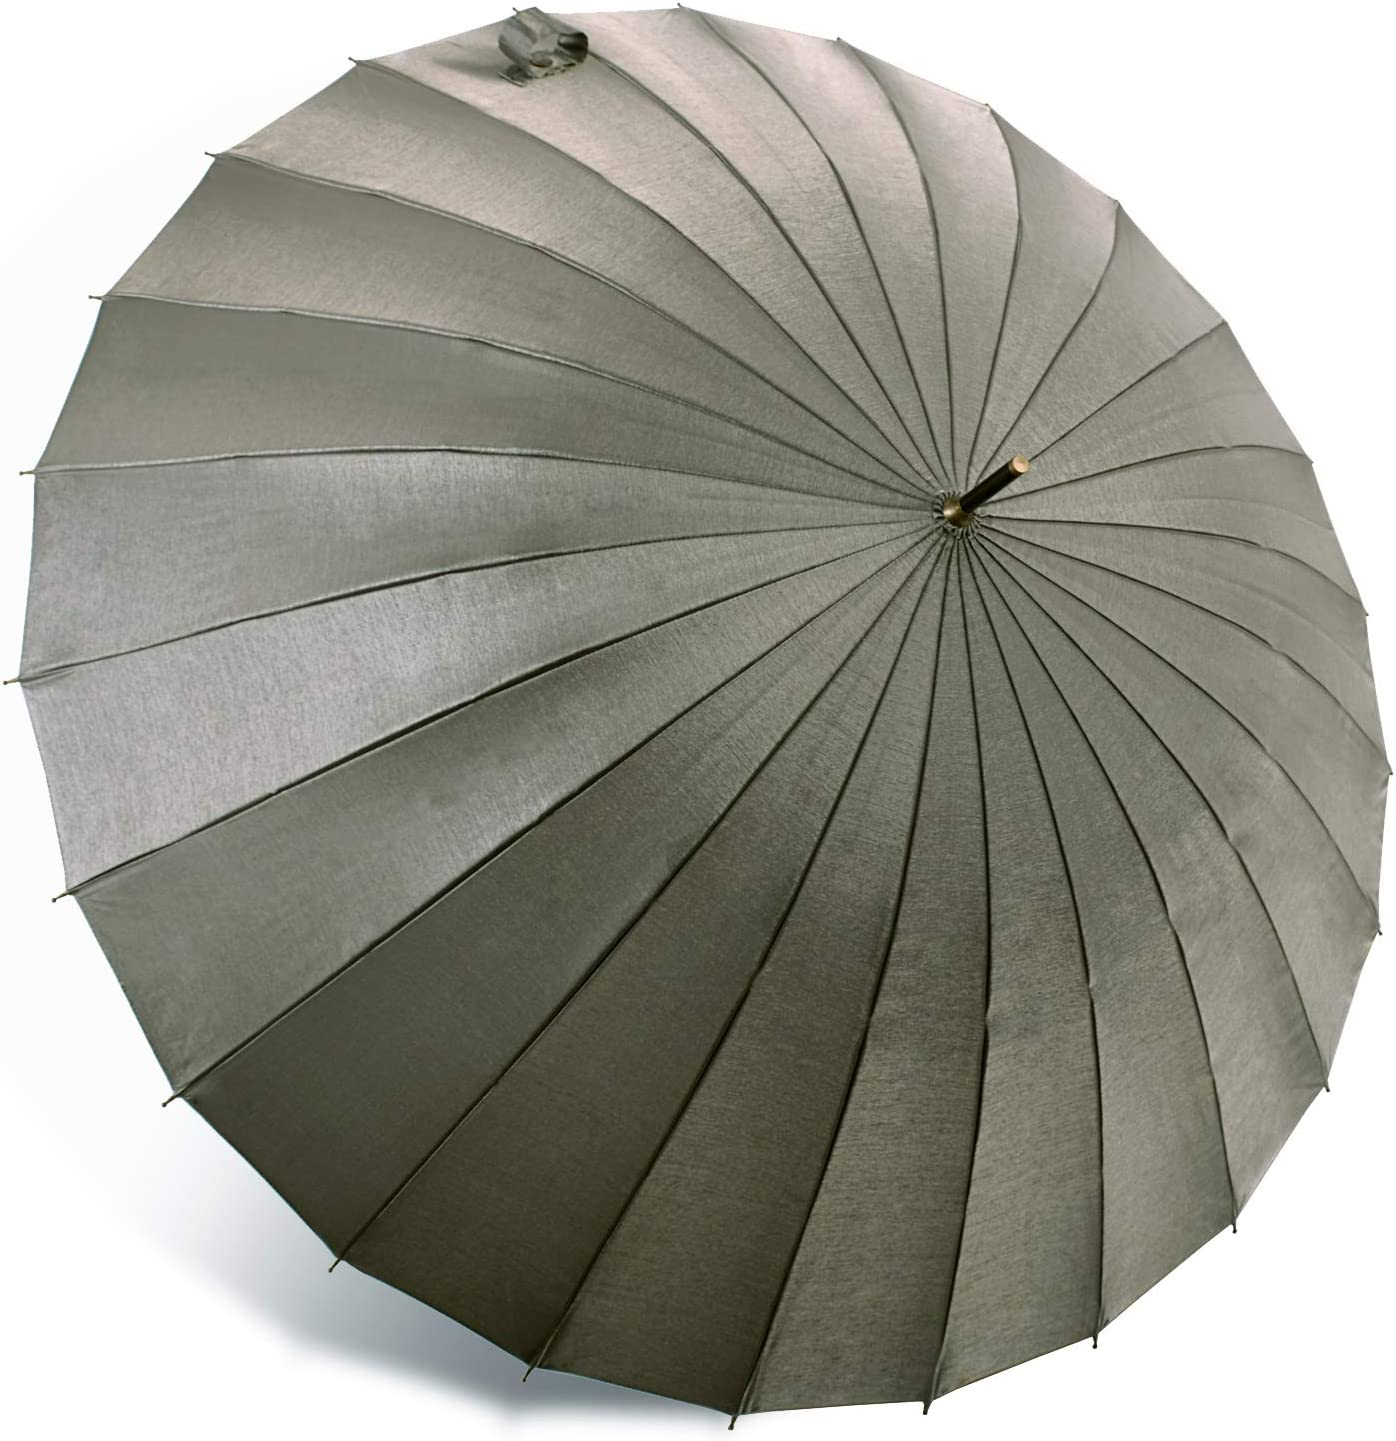 Top 10 Best Umbrellas For Kids (2020 Reviews & Buying Guide) 3